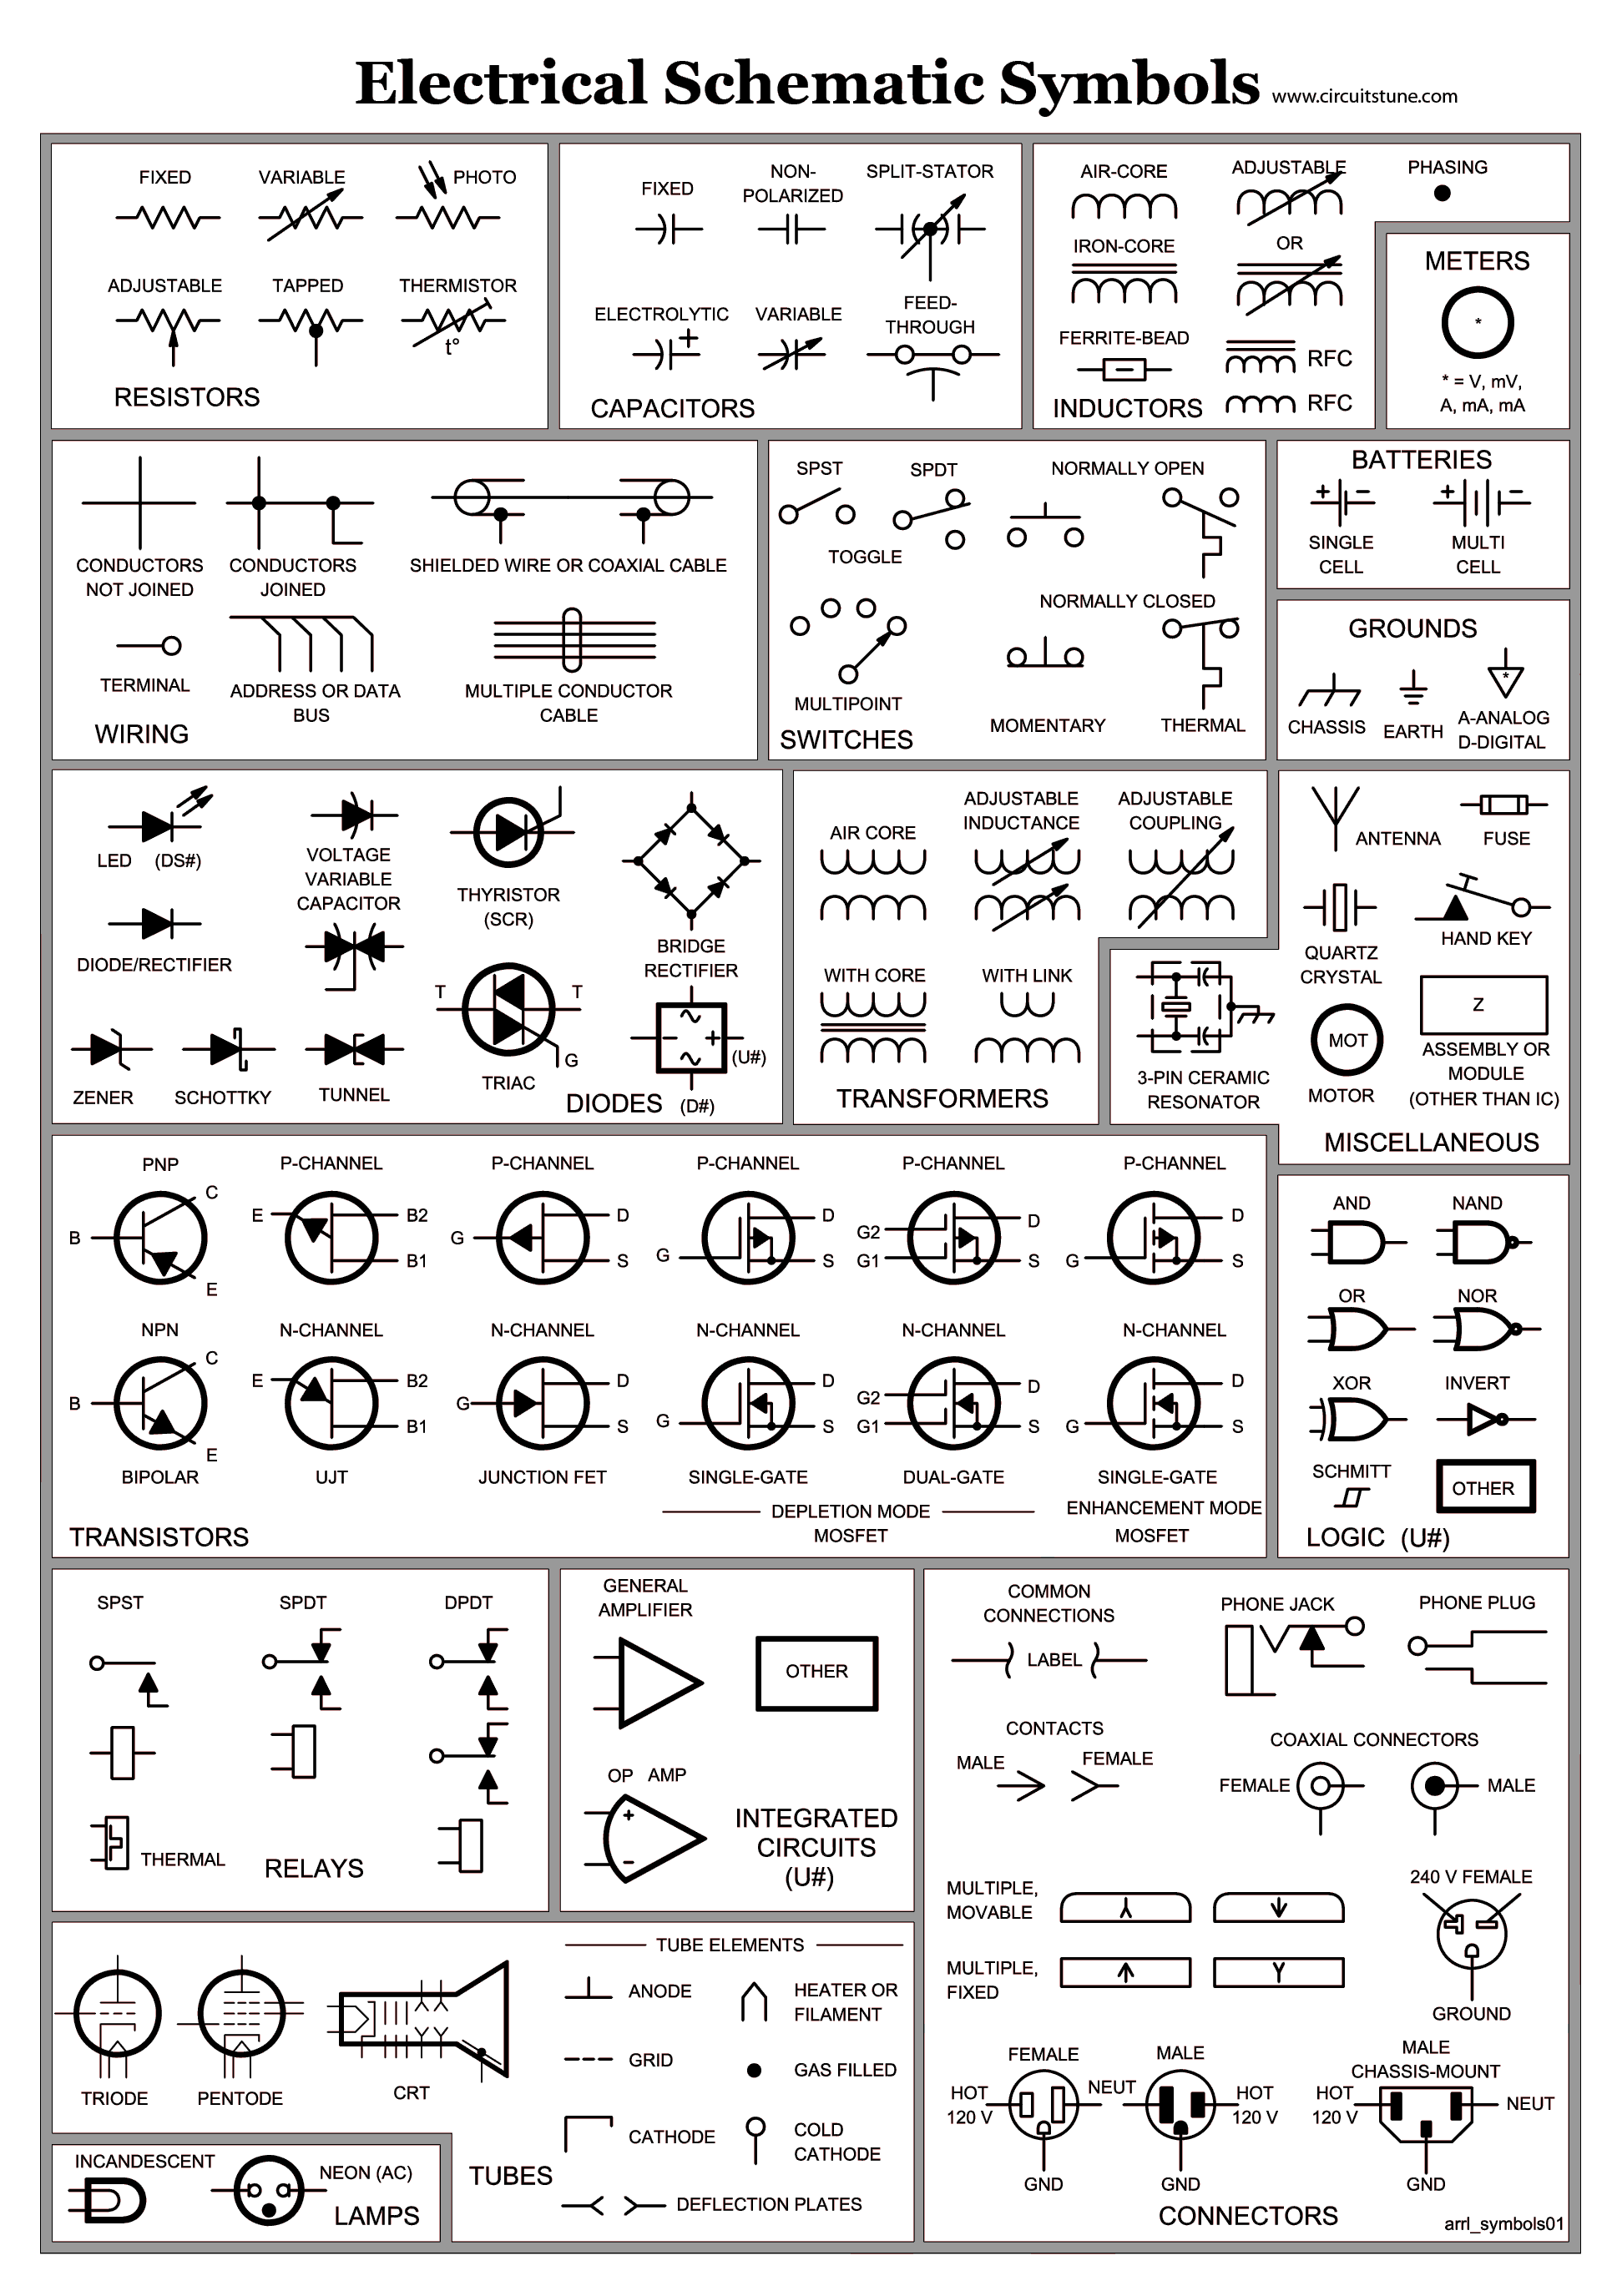 a65d176364692d2ebe913b58a654cfc3 electrical schematic symbols wire diagram symbols automotive Standard Electrical Abbreviations at eliteediting.co